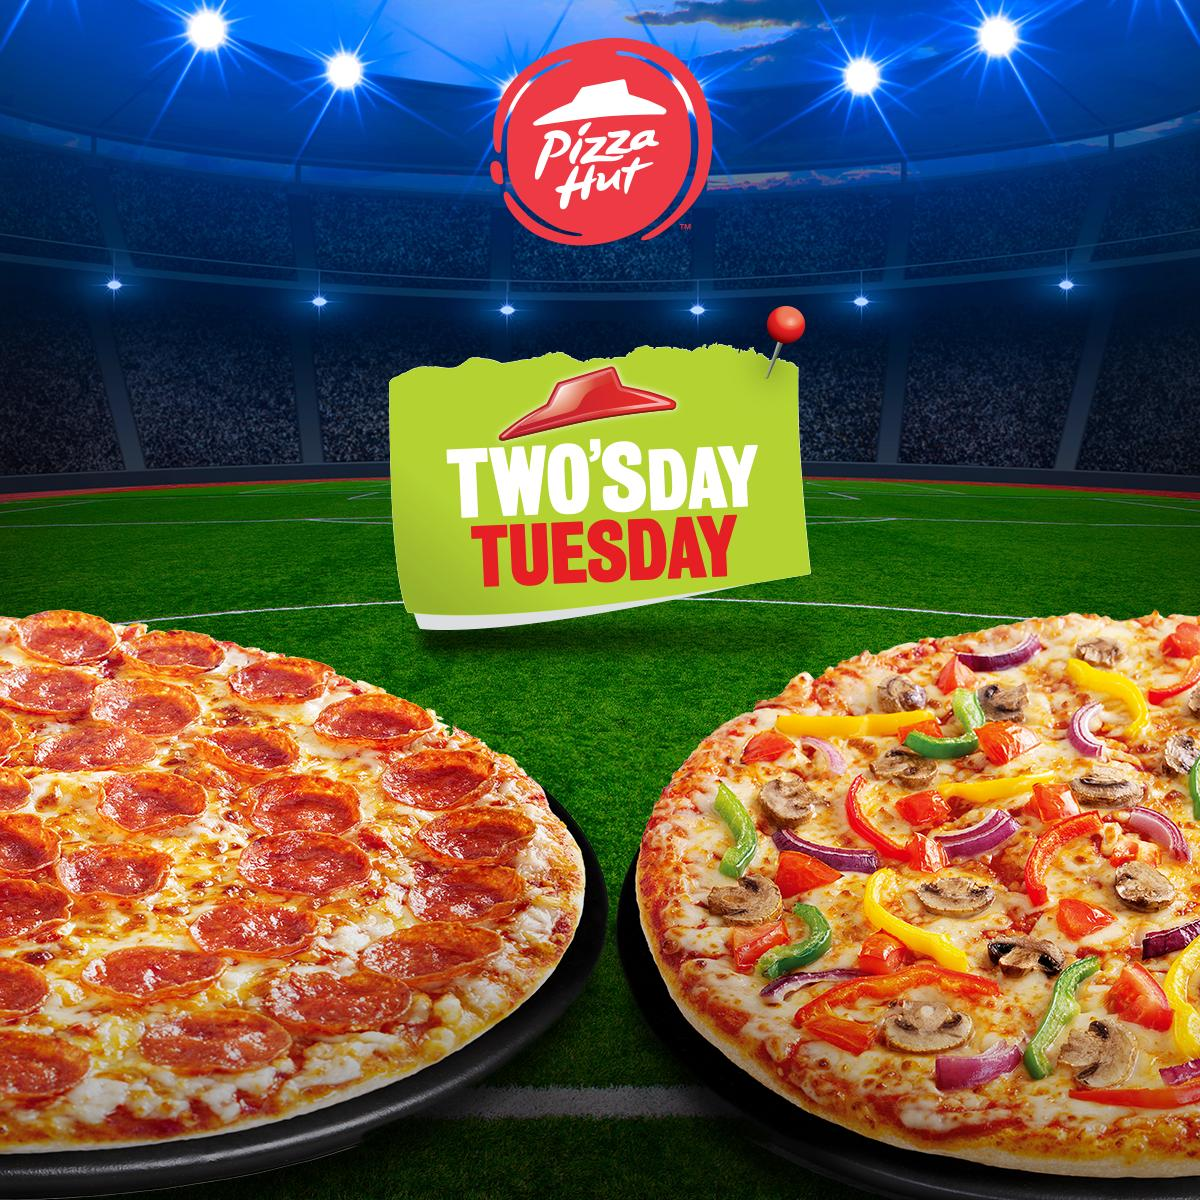 We've got the mid-game meal sorted with 2-FOR-1 #Twosday 🙌🏼 Order a medium or large pizza and receive a second one free using the code 'TWOSD'! #coybig https://t.co/sdgD6jsuQw